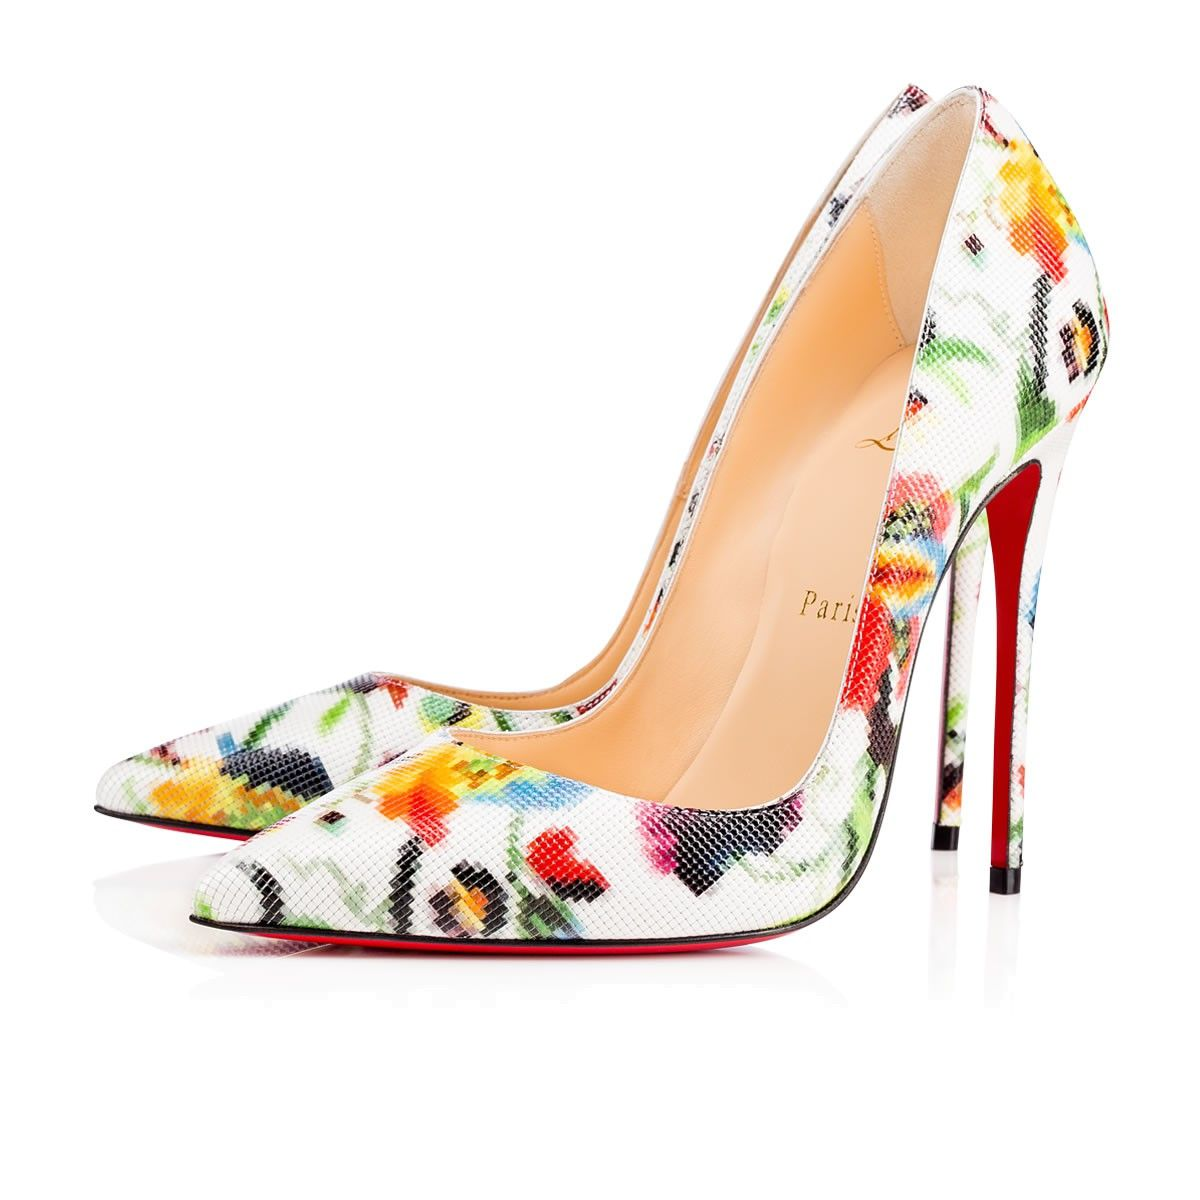 reputable site 74cb7 47f6d CHRISTIAN LOUBOUTIN So Kate 120Mm Multicolor Patent Mosaique ...